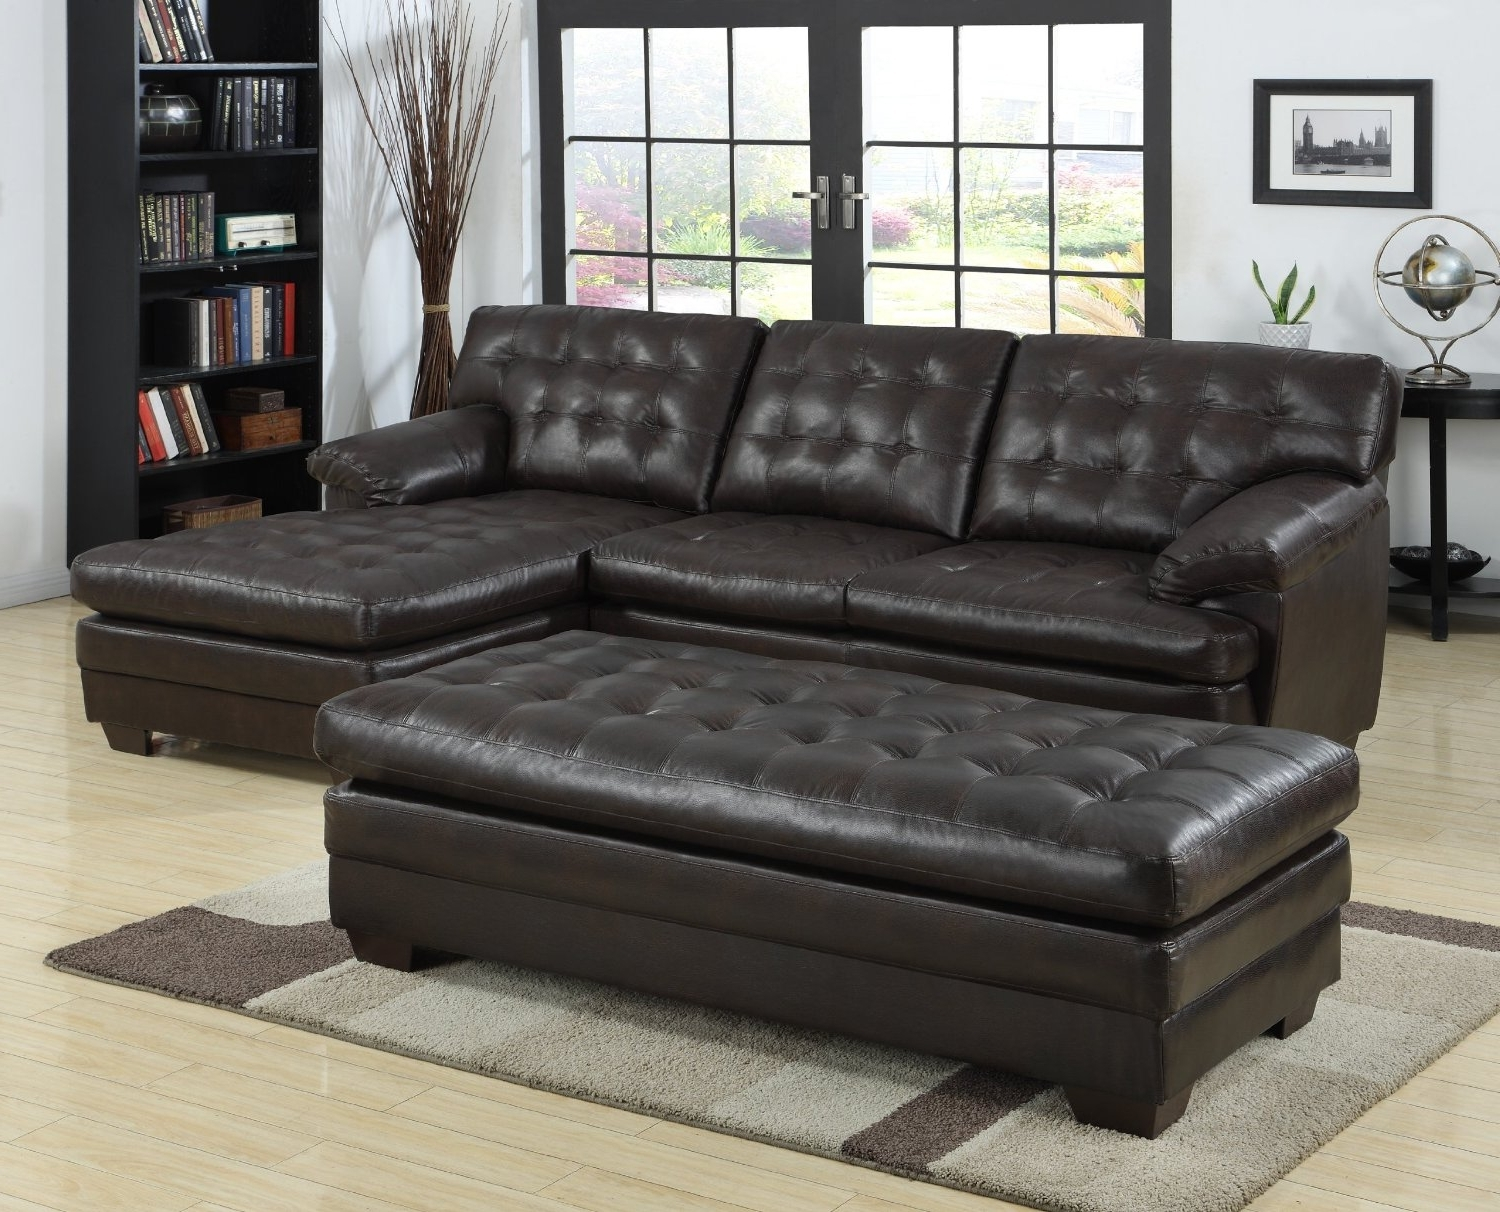 Preferred Leather Couches With Chaise Lounge Intended For Black Leather Sectional With Chaise Sectional Sofas With Recliners (View 2 of 15)